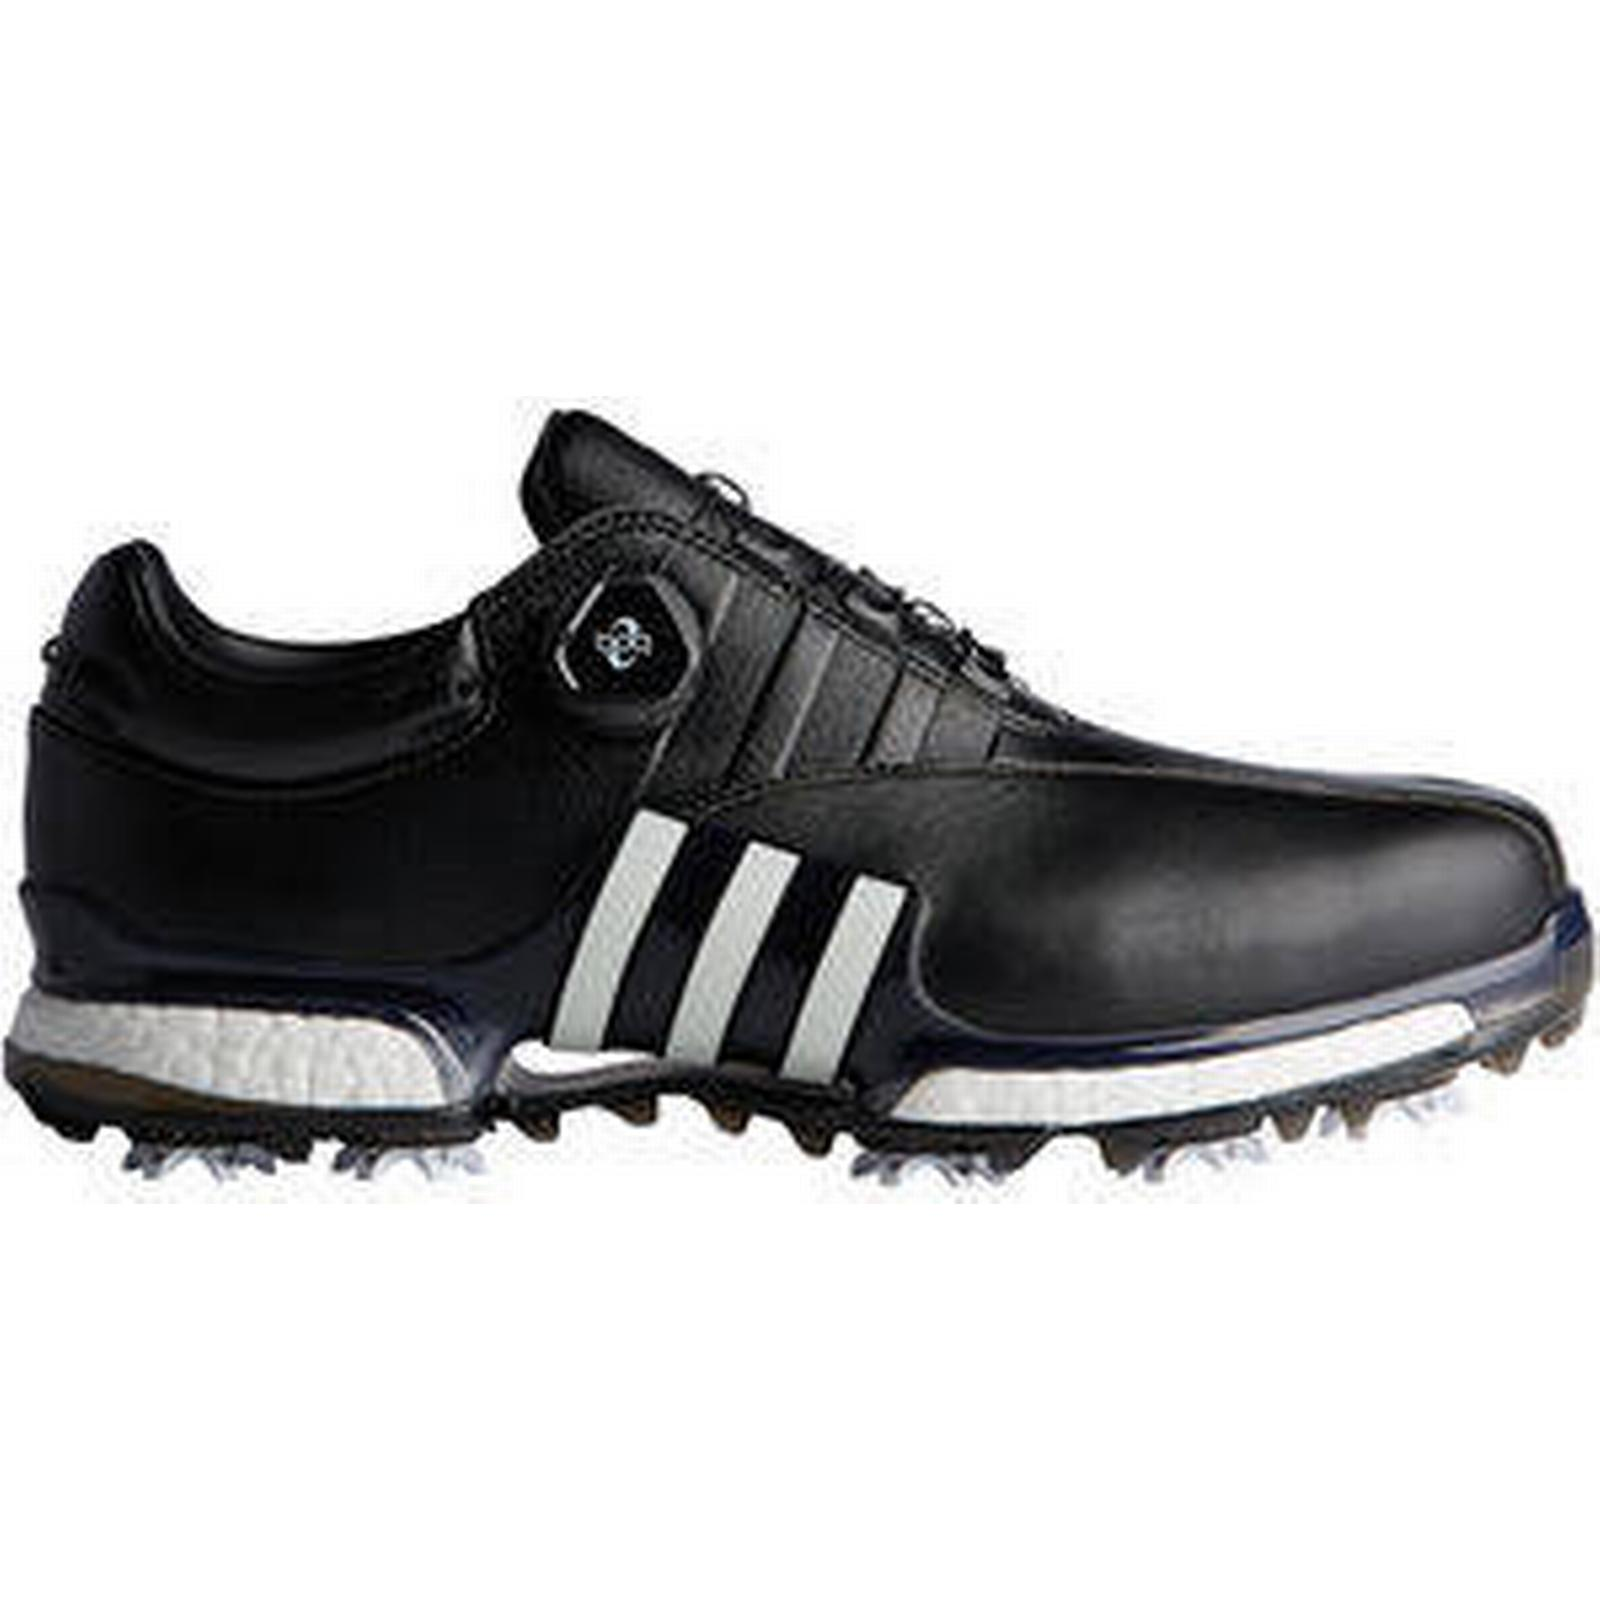 AdidasGolf adidas Tour360 Golf Tour360 adidas BOA 2.0 Shoes ff214b